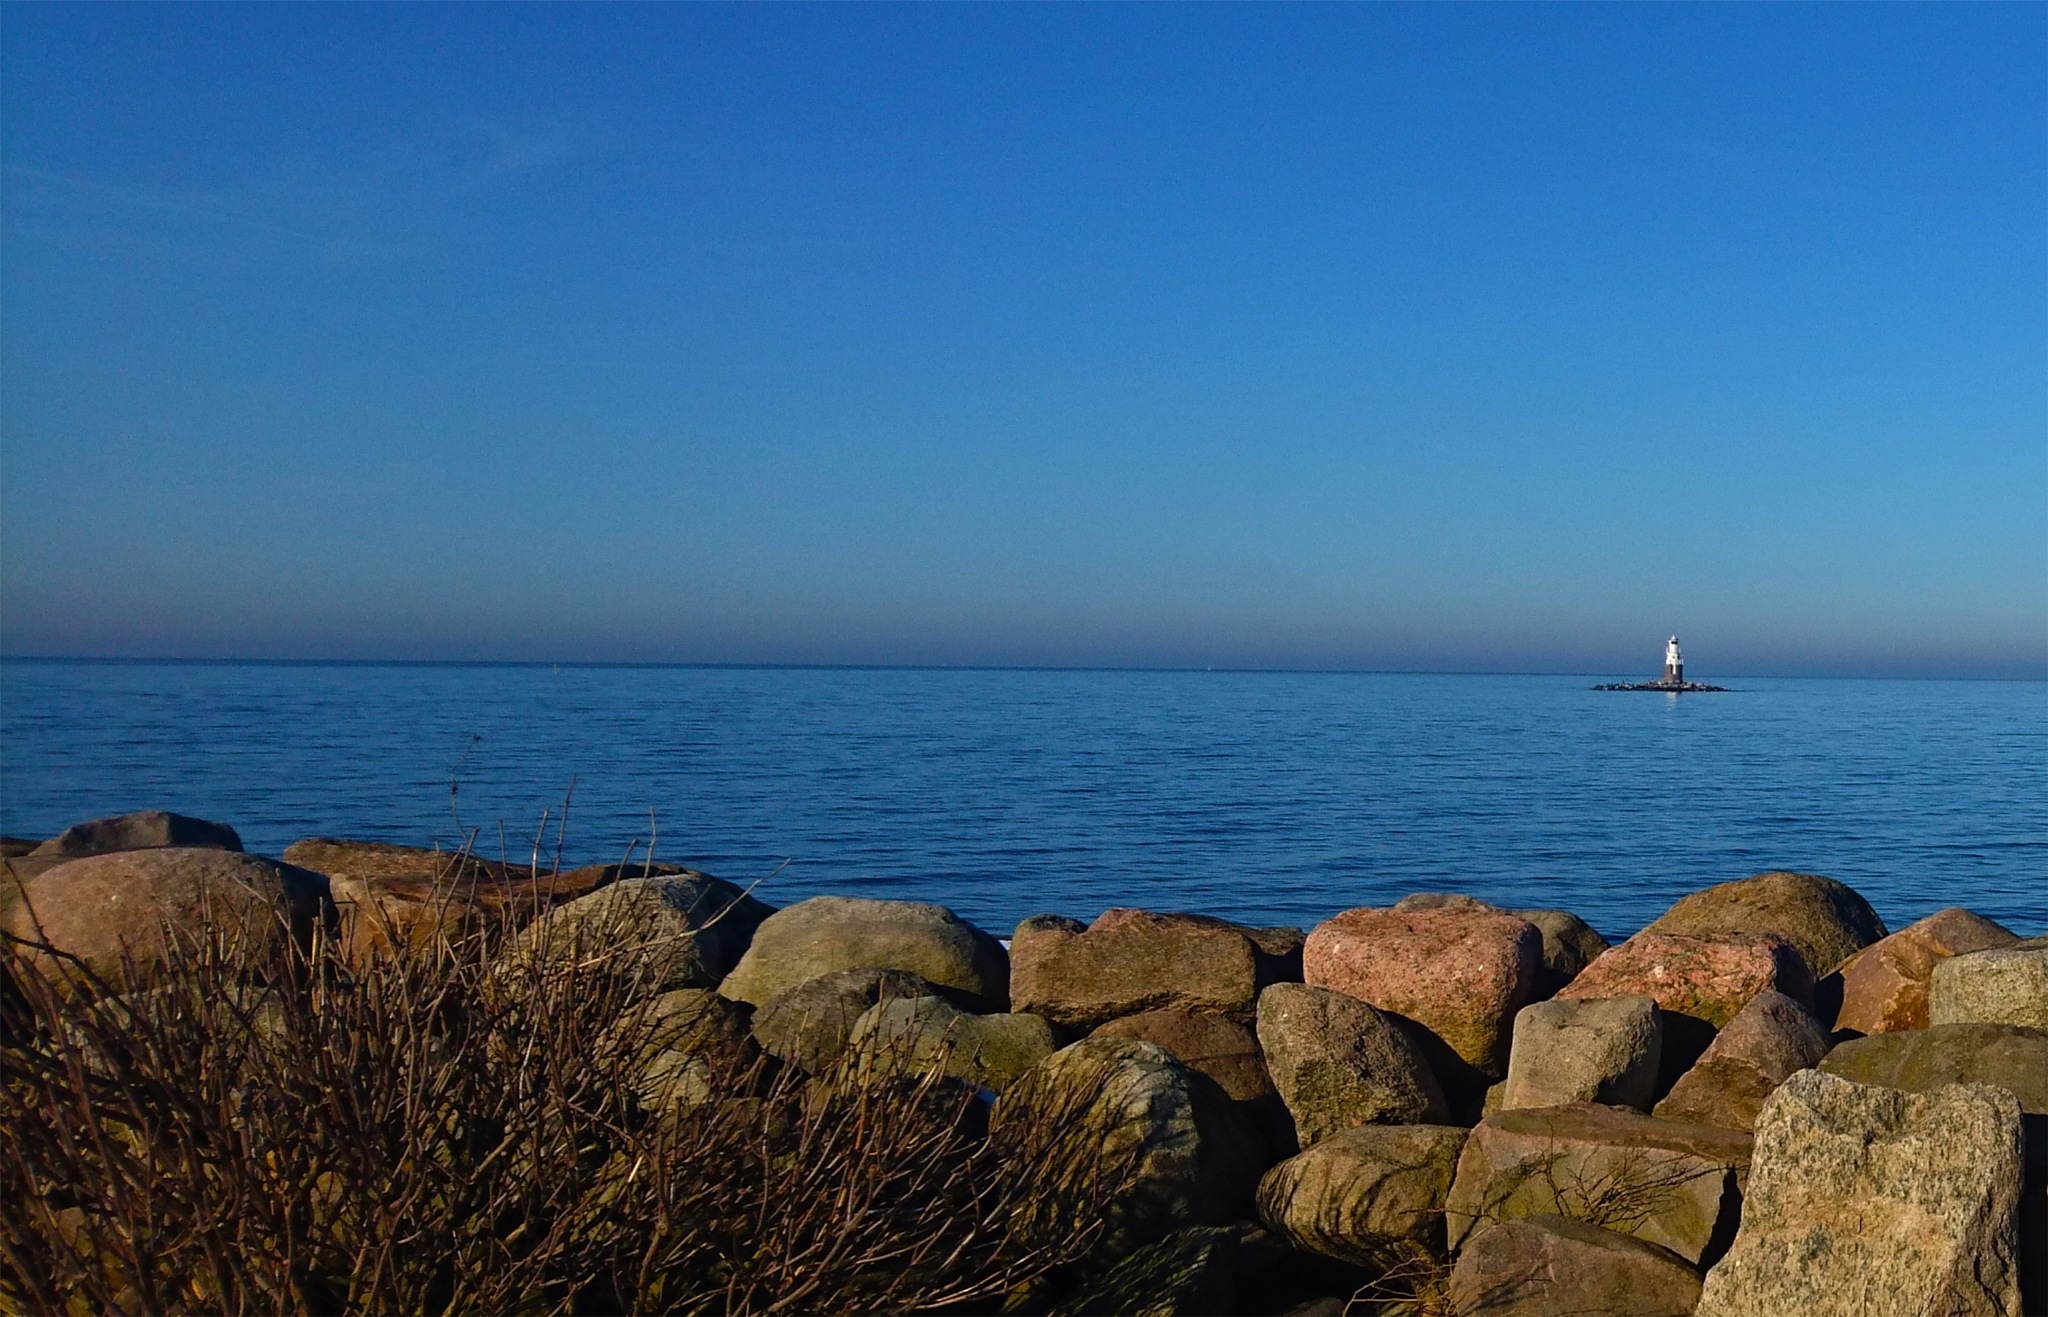 A sunny day at the sea by Olle Möller